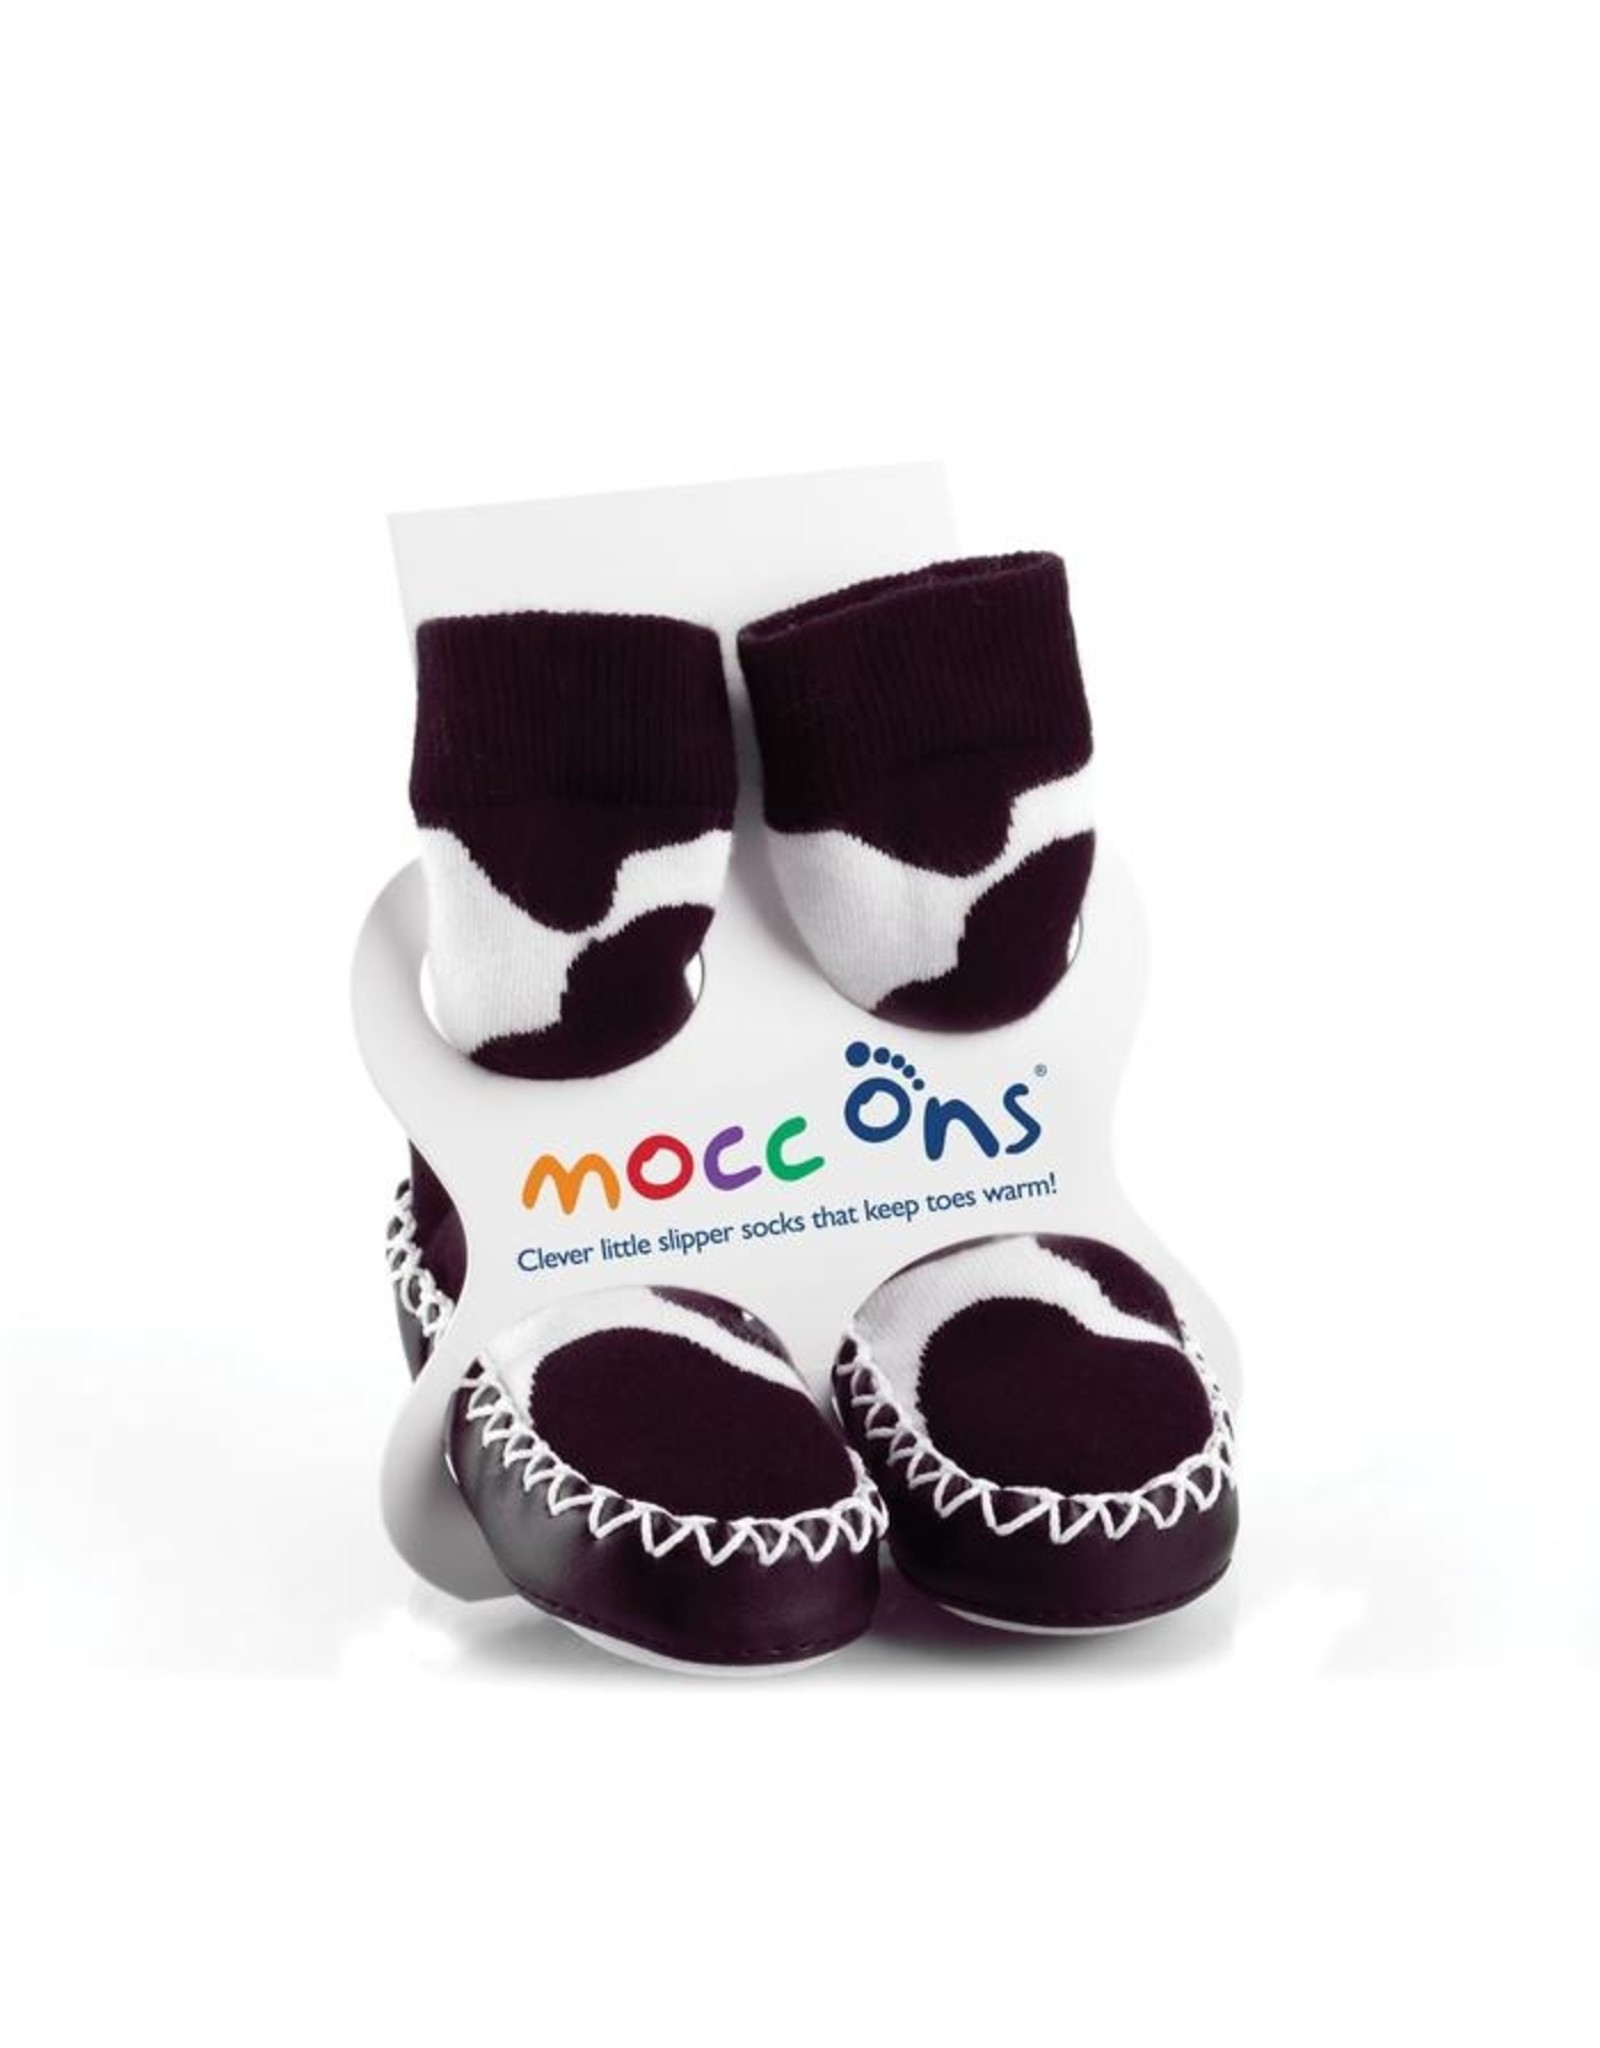 Mocc ons Mocc Ons- Cow